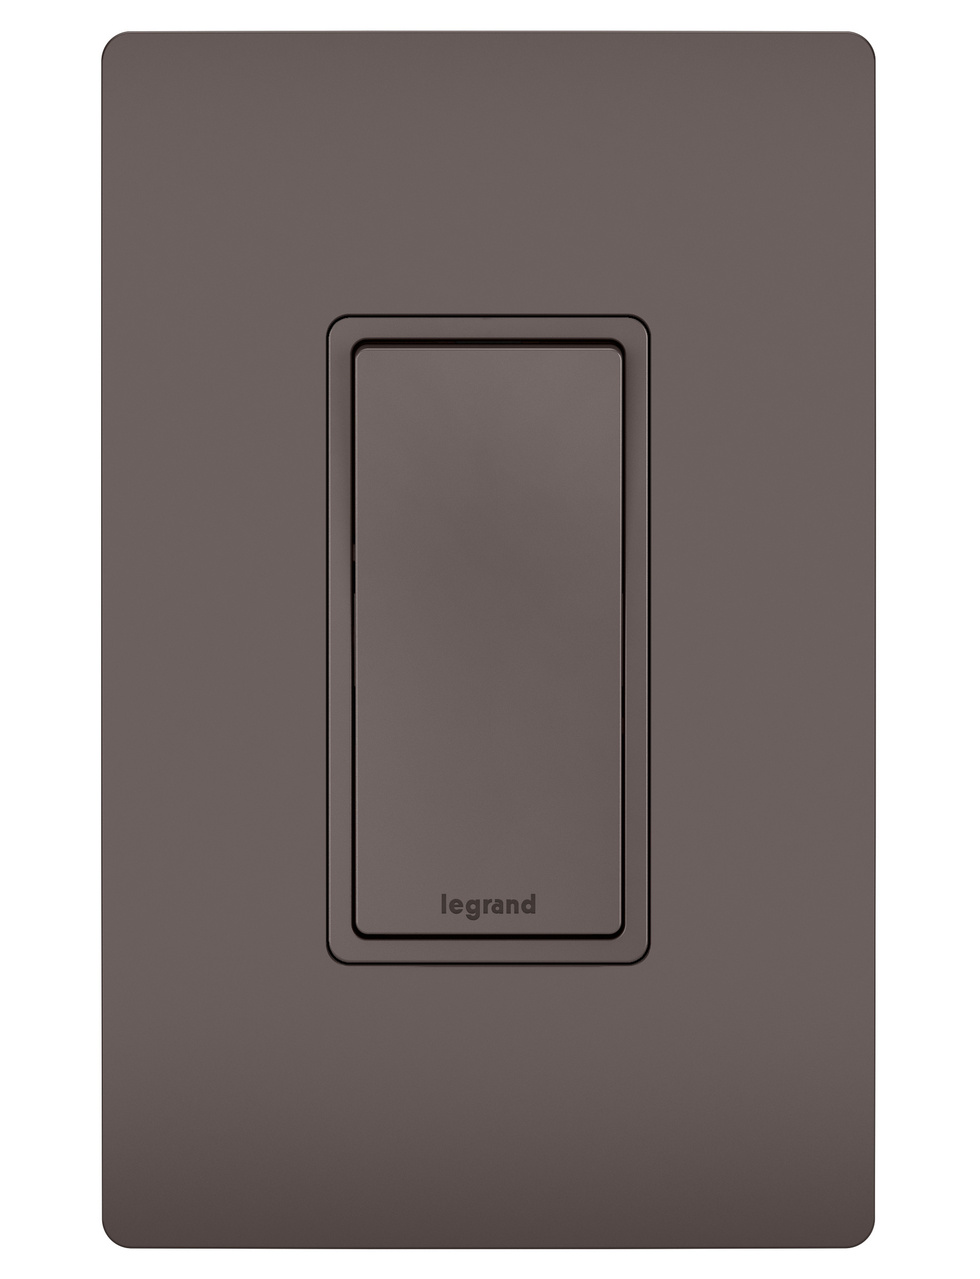 hight resolution of 15a 4 way switch brown